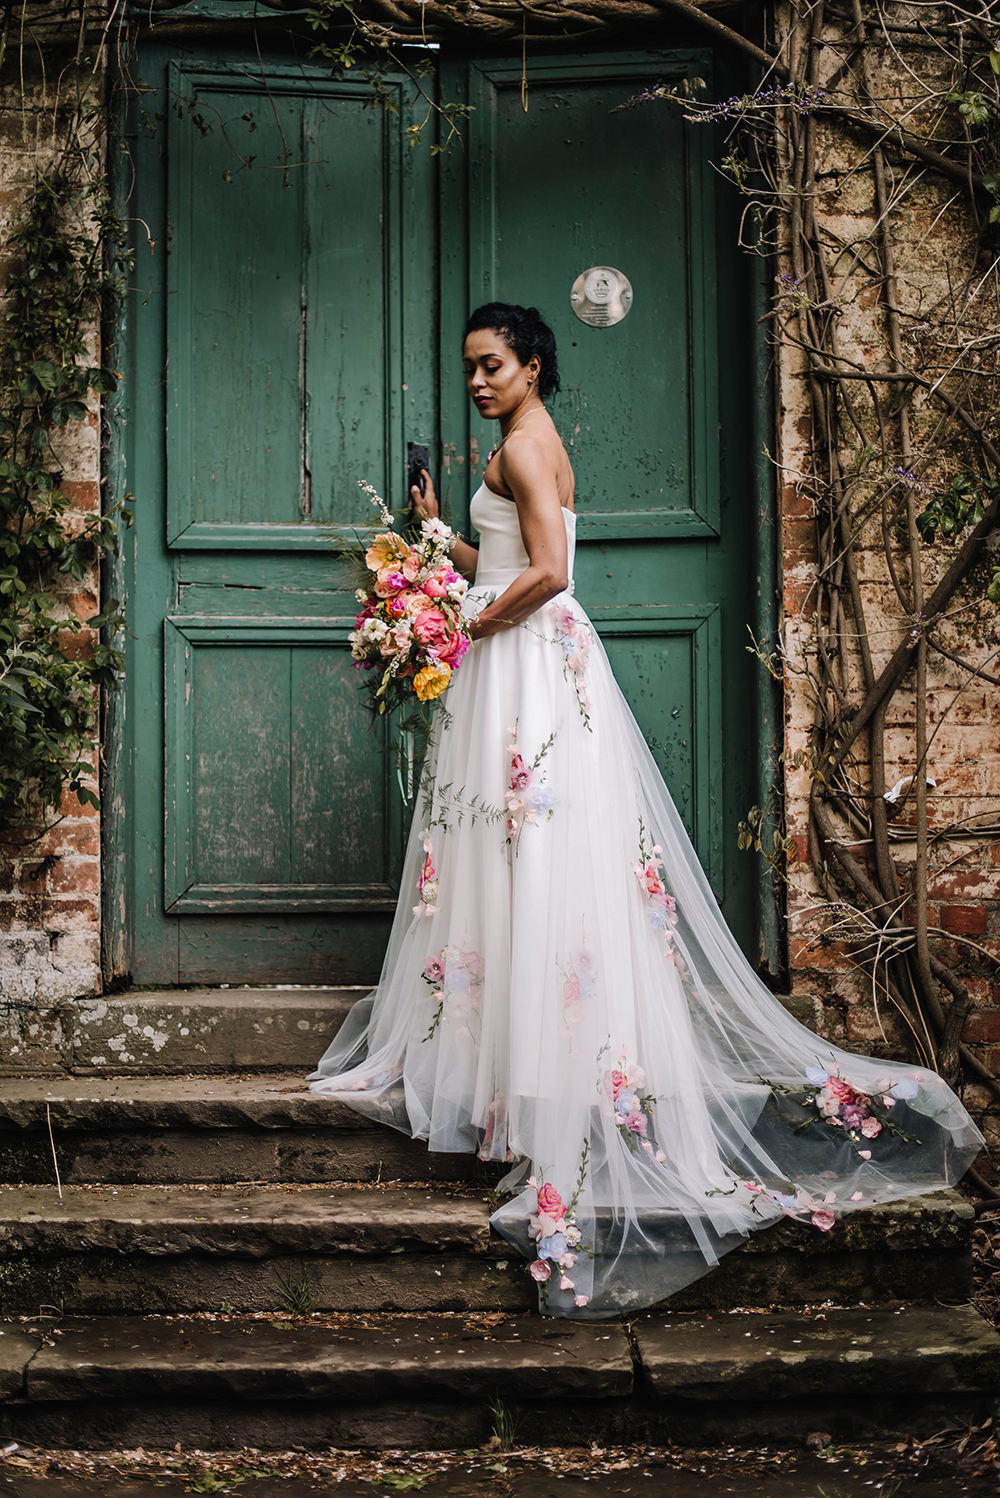 Bride Bridal Dress Gown Veil Embroidered Flowers Strapless Coral Floral Wedding Ideas Birgitta Zoutman Photography